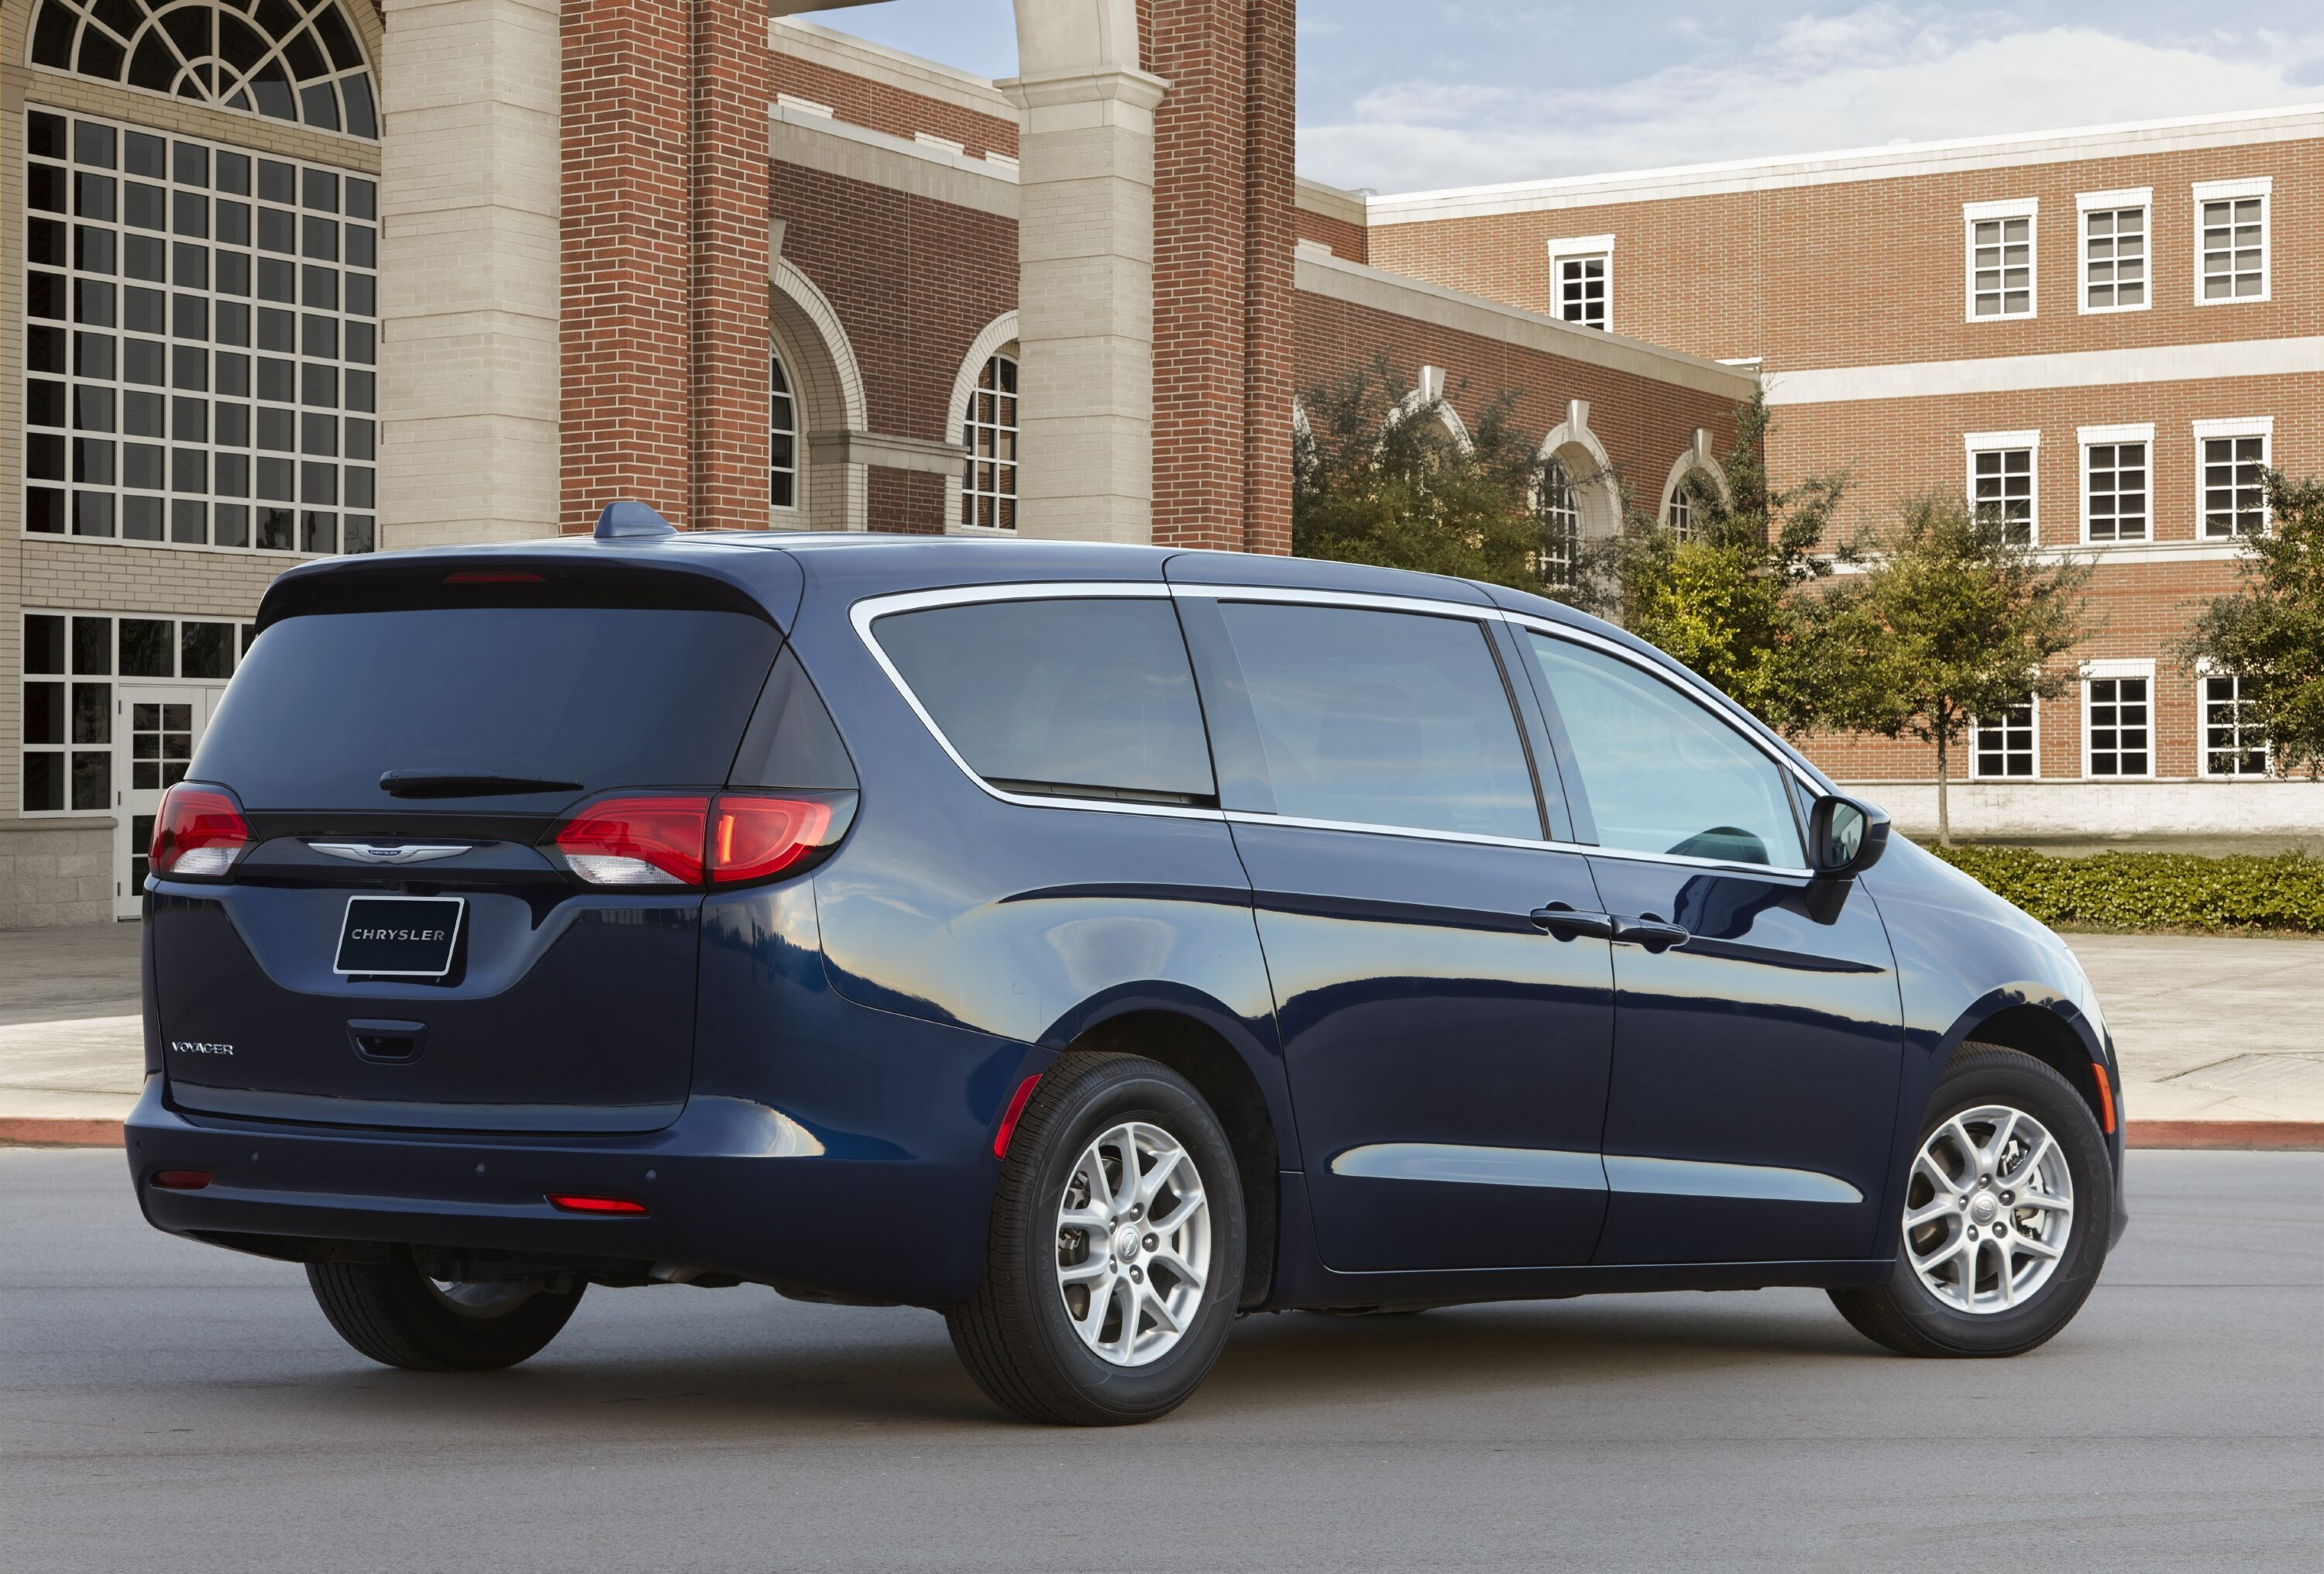 2020 Chrysler Voyager rear view